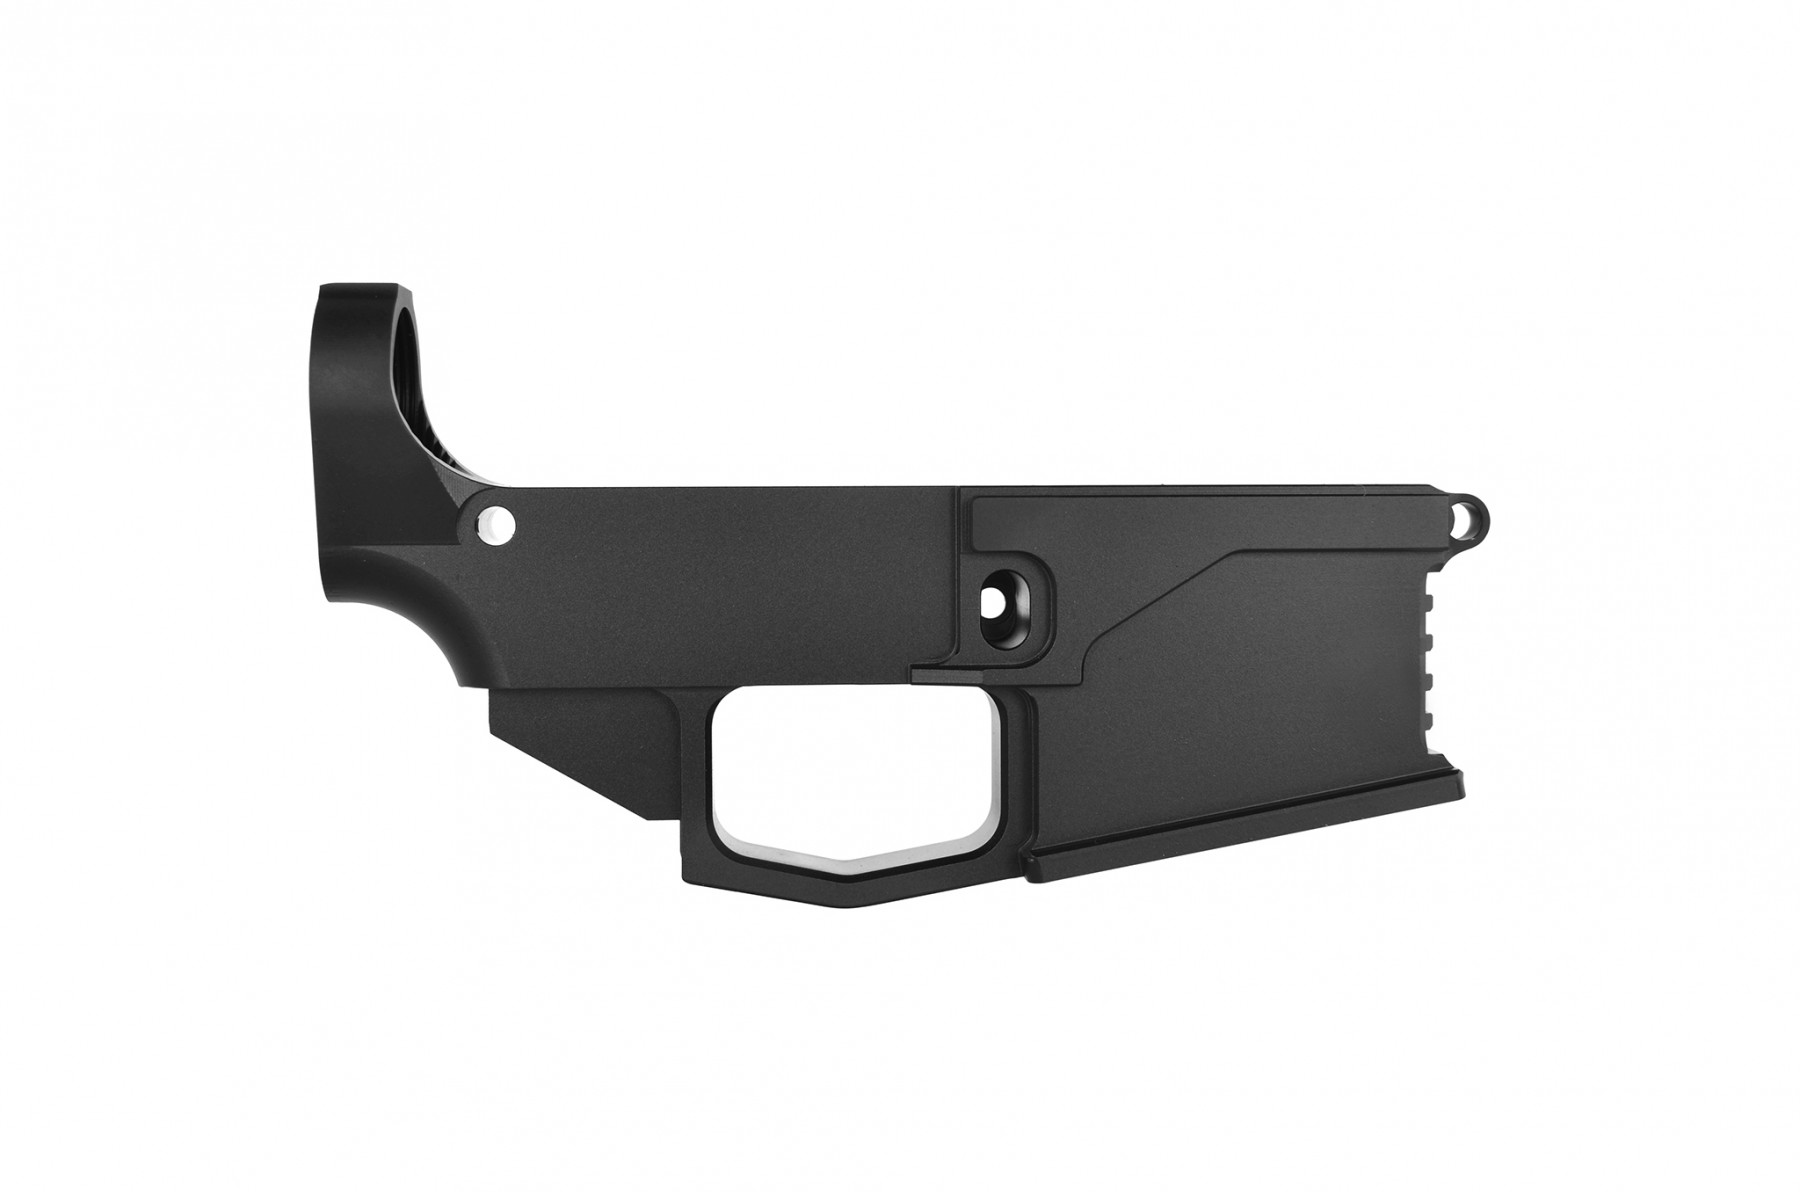 80% AR15 Rifle Lower Receiver